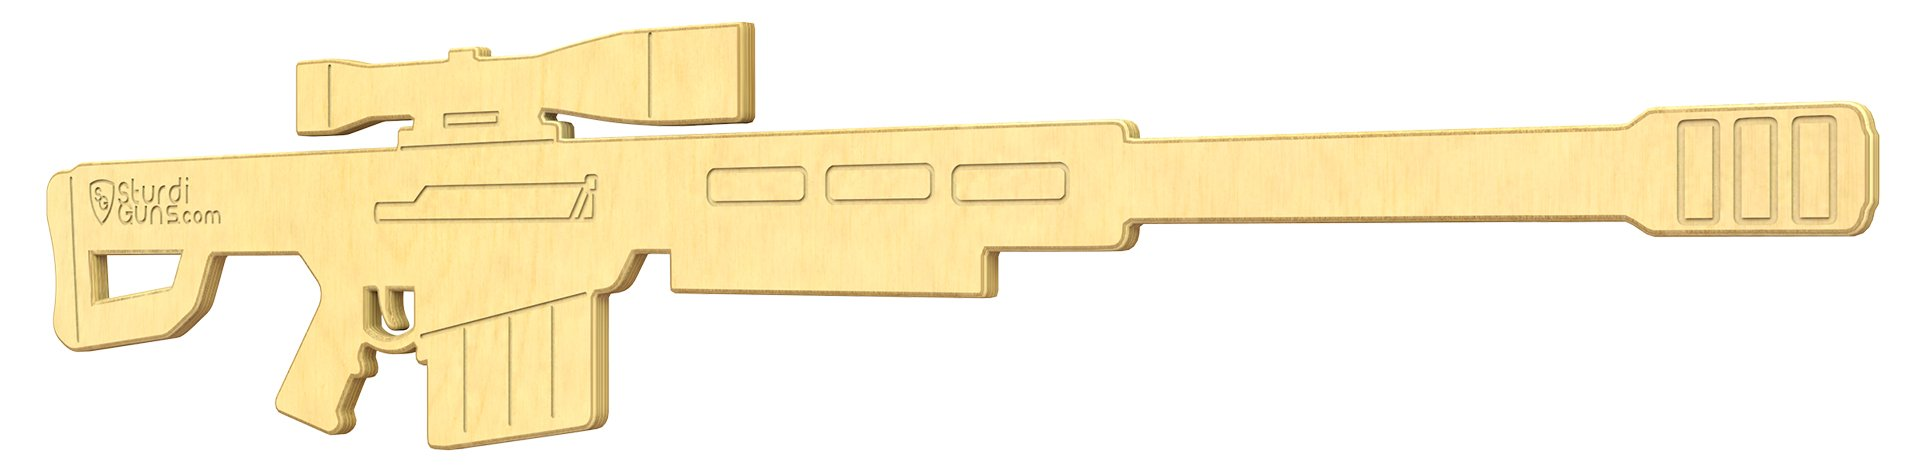 SturdiGuns Kids Sniper 50-Cal Wooden Toy Gun with, Made in America, Extremely Durable